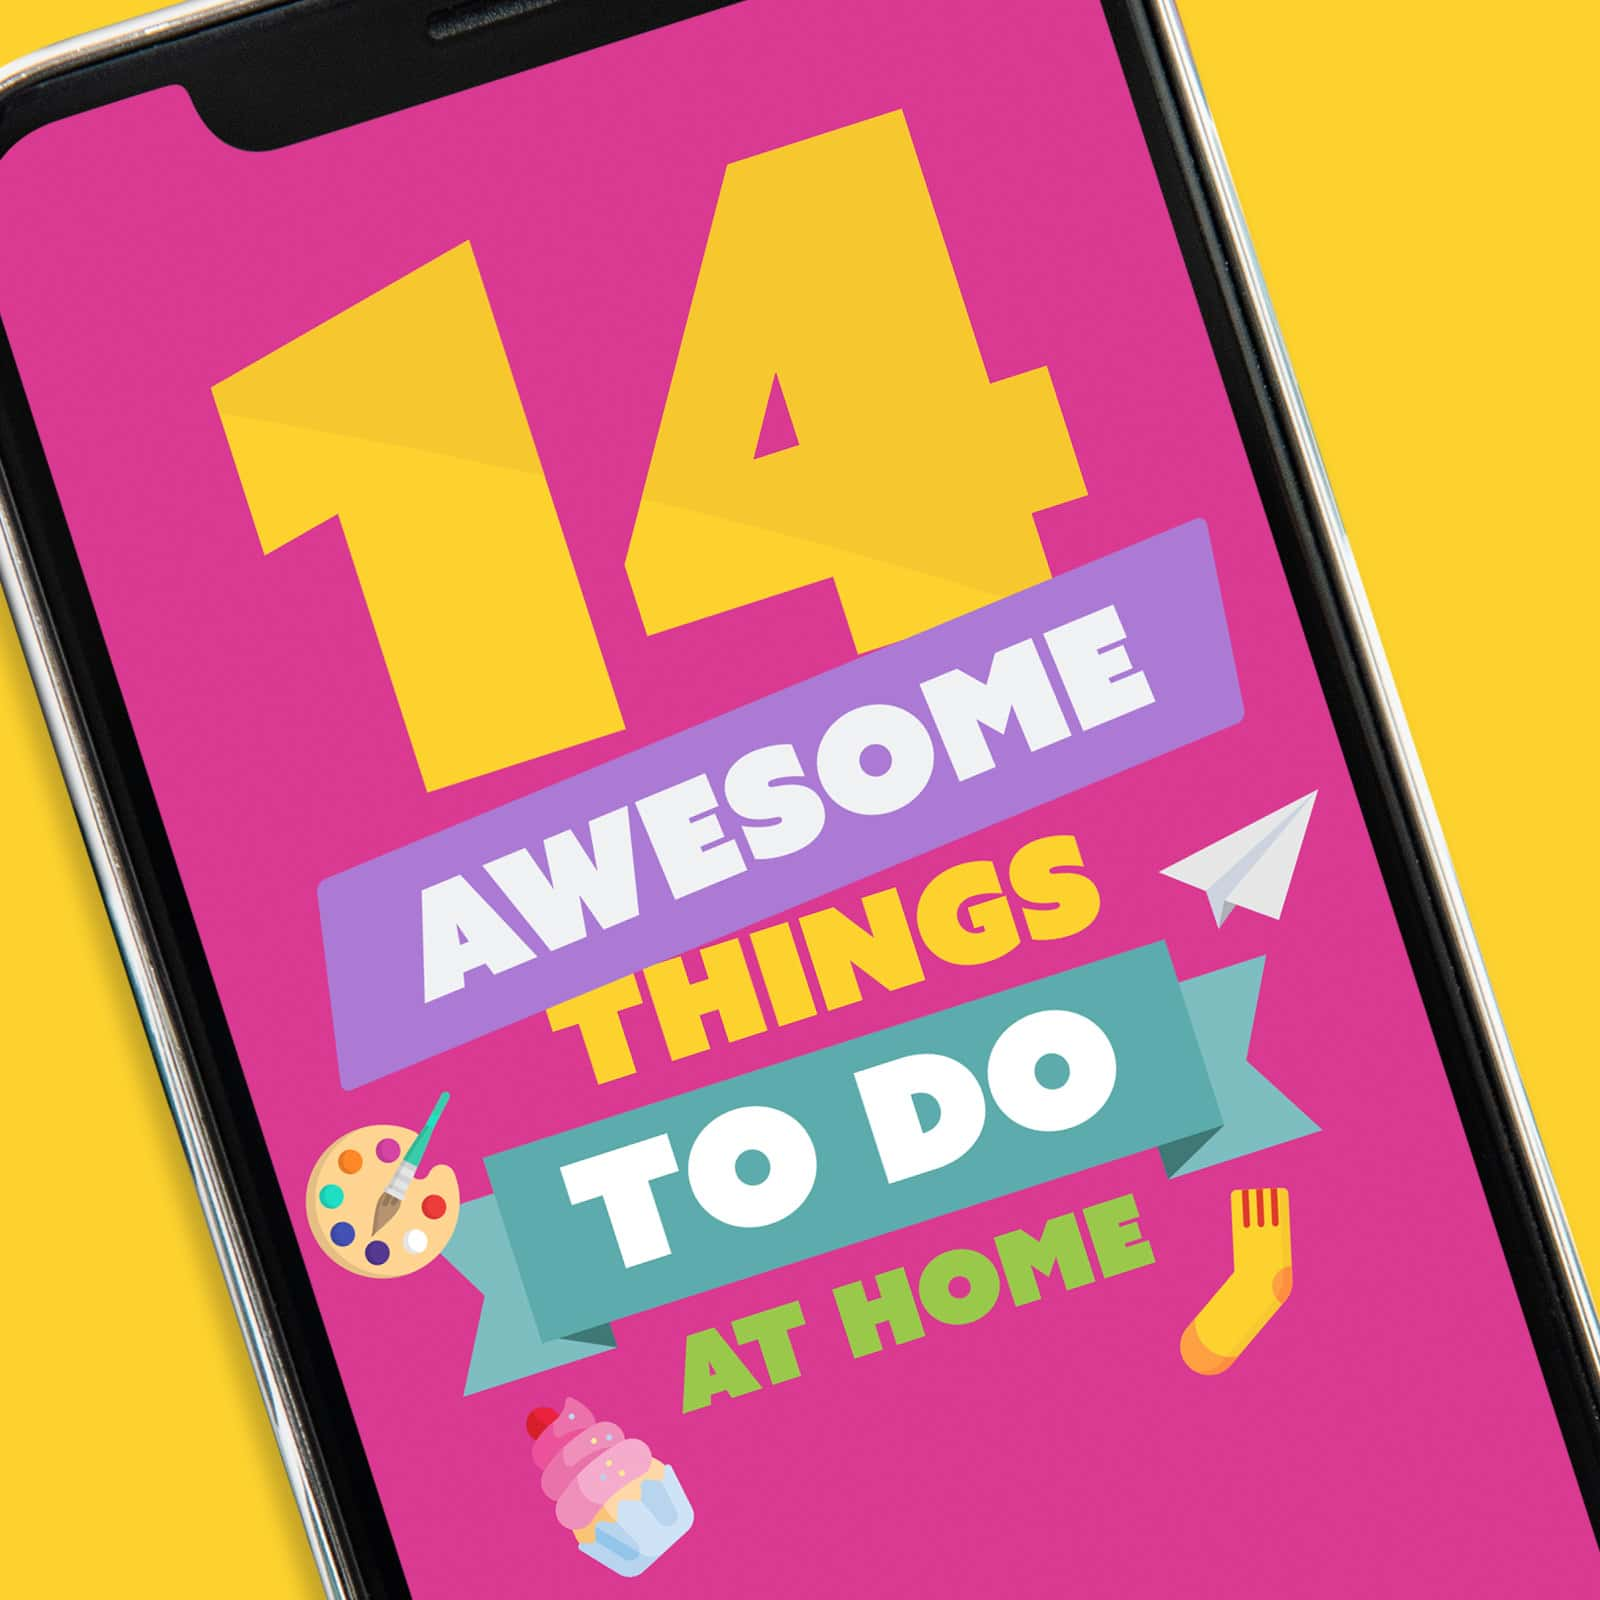 Screenshot of 14 Awesome Things To Do At Home App